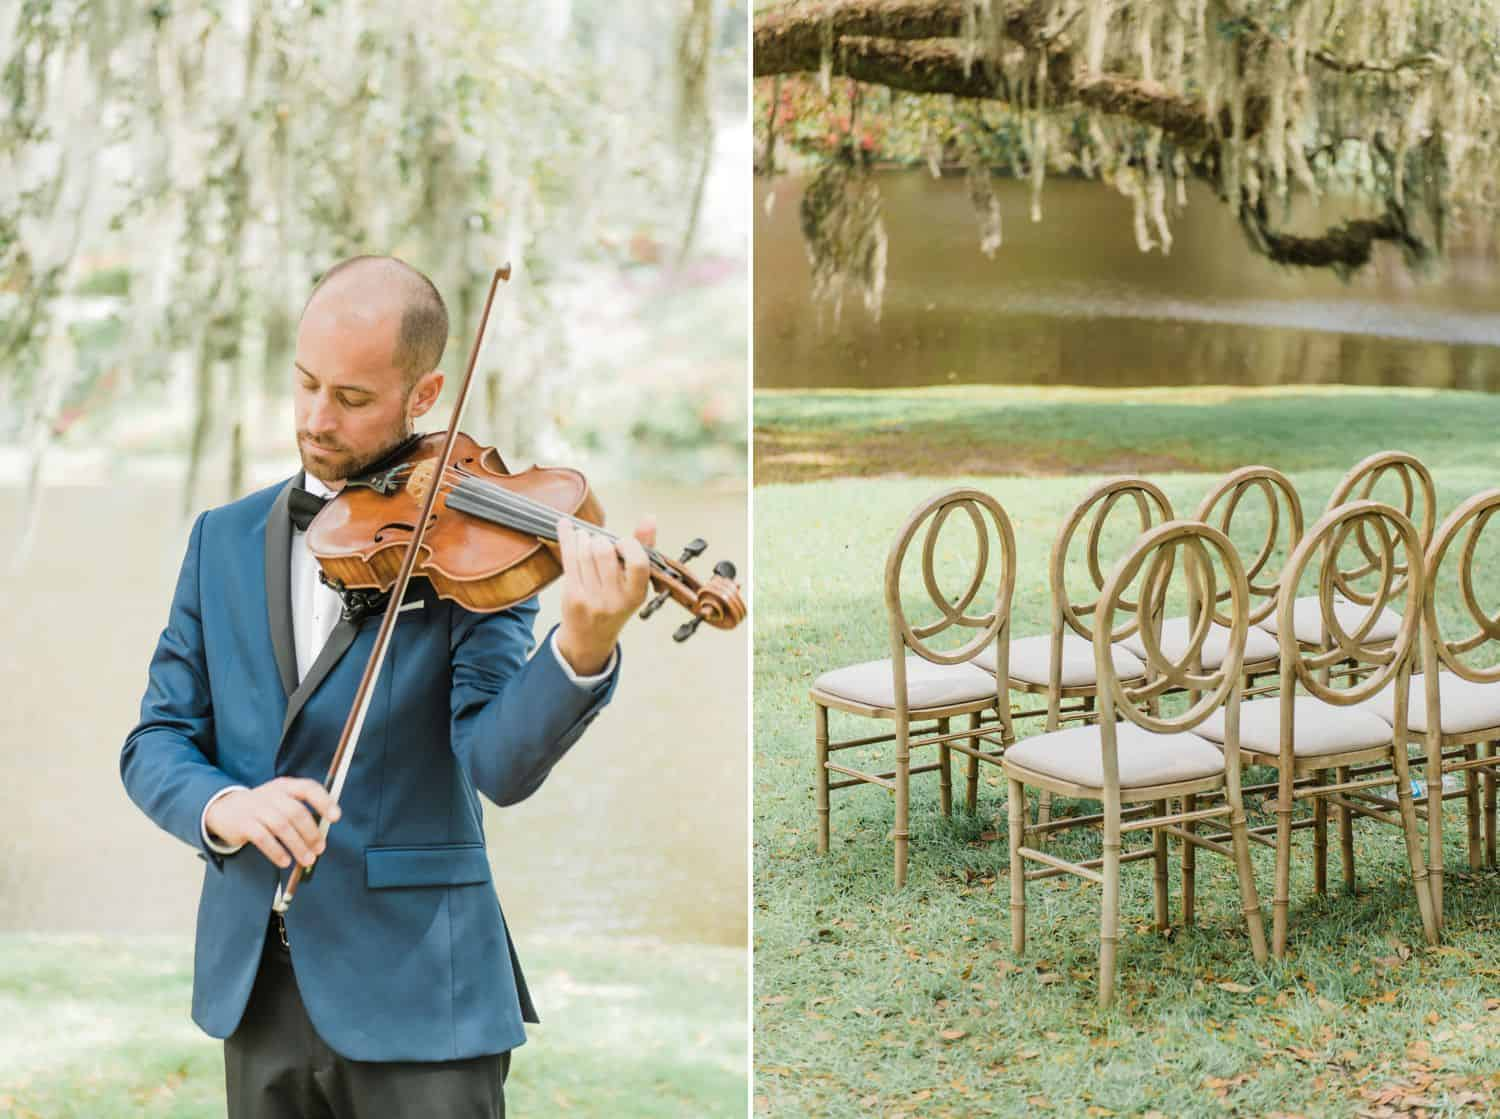 Wedding Violinist at Outdoor Southern Wedding: Get Photography Clients with Styled Shoots